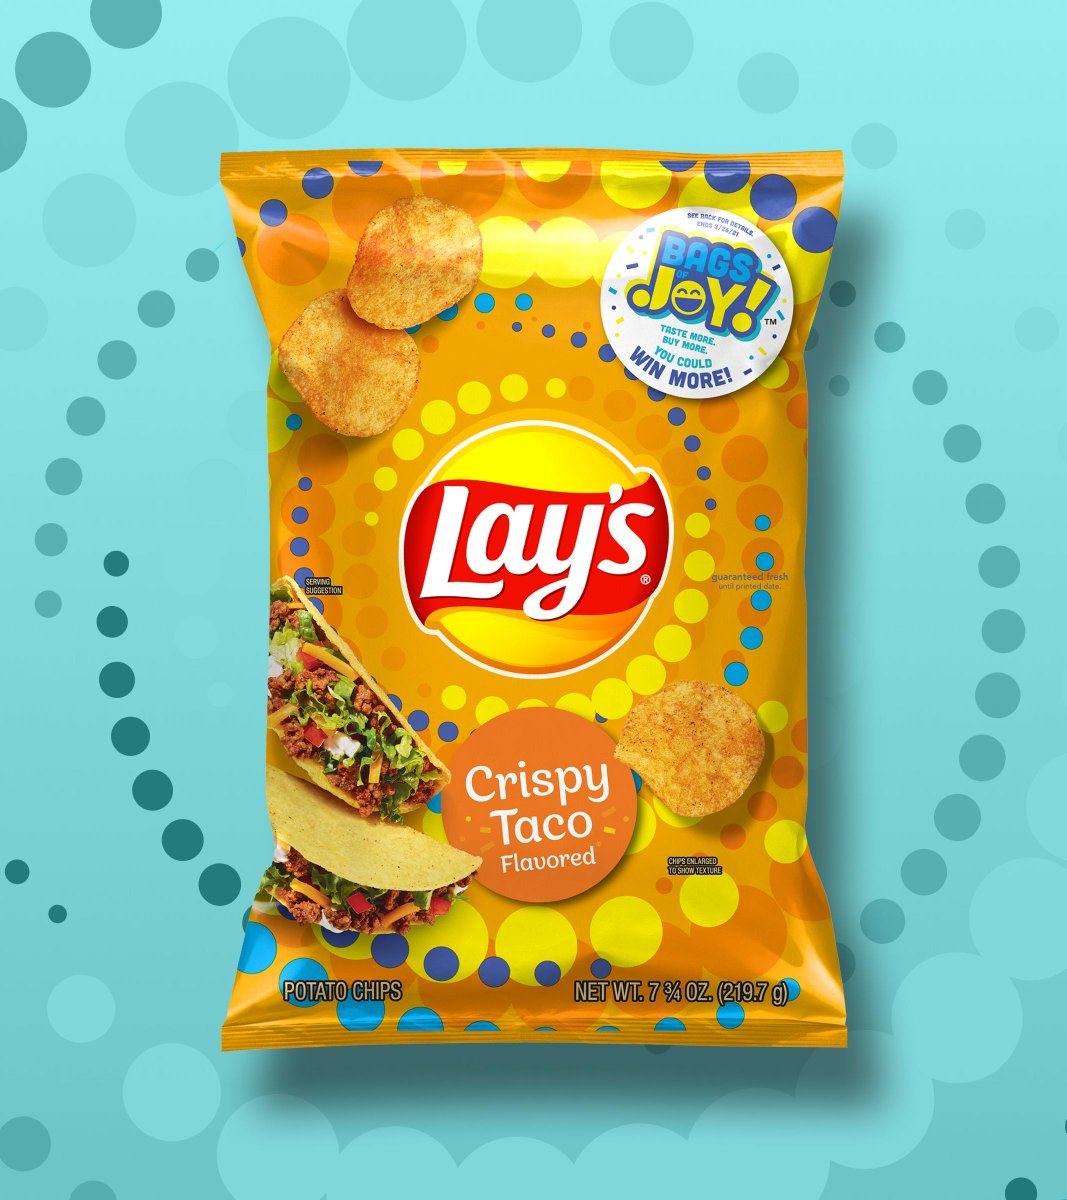 They're BAAAAACK: Lay's Crispy Taco and Kettle Cooked Flamin' Hot Limón. Comment a 🌮 or 🔥 below and we may send you a bag of your own!